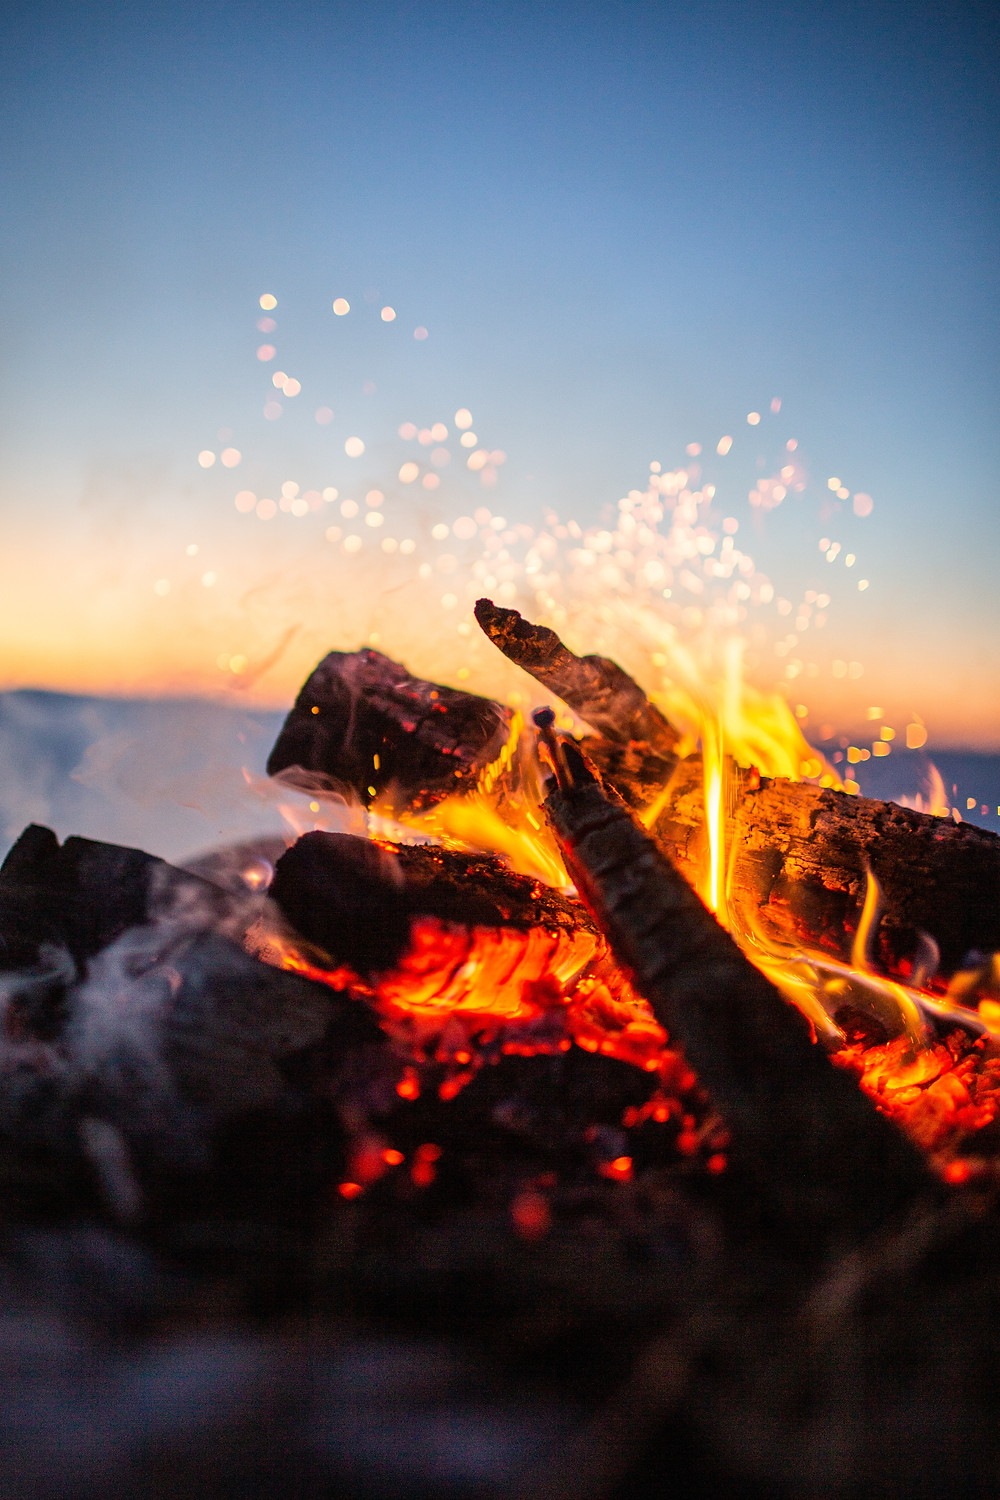 5 elements of nature, fire